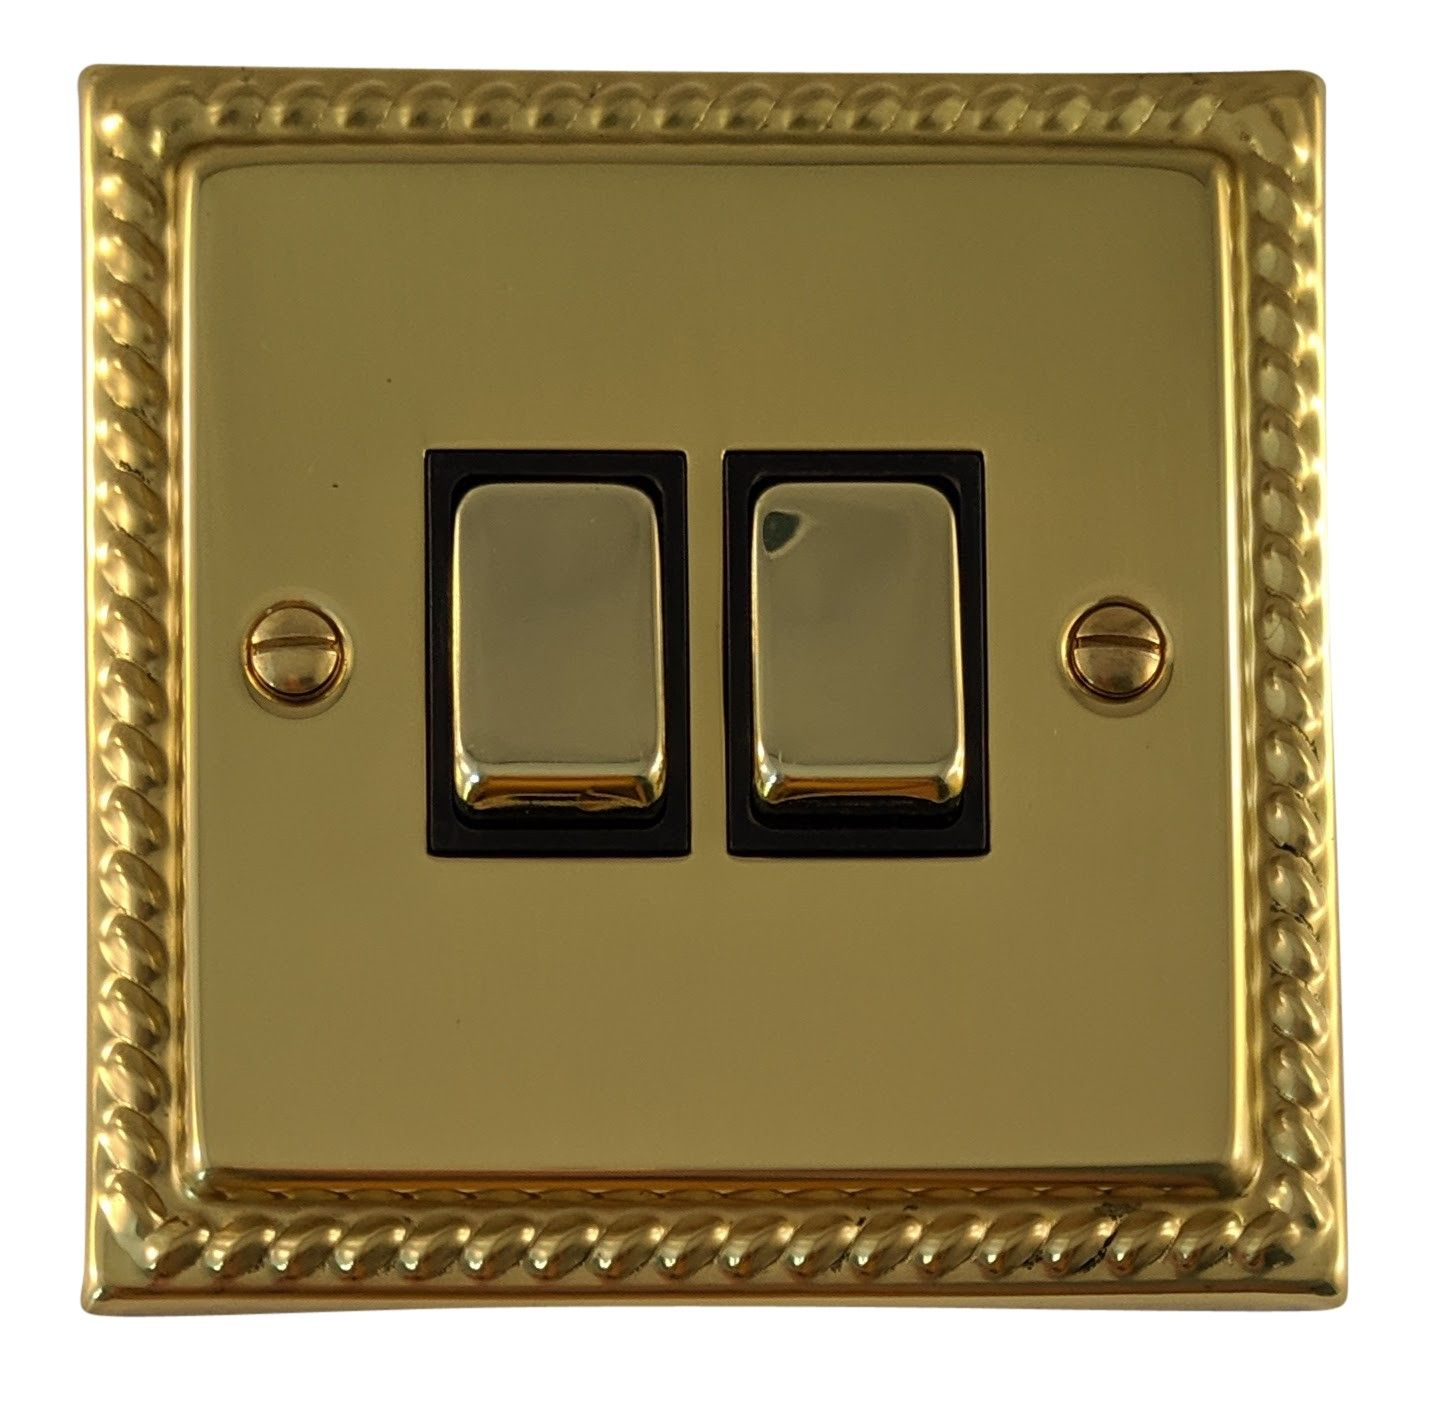 G&H MB302 Monarch Roped Polished Brass 2 Gang 1 or 2 Way Rocker Light Switch